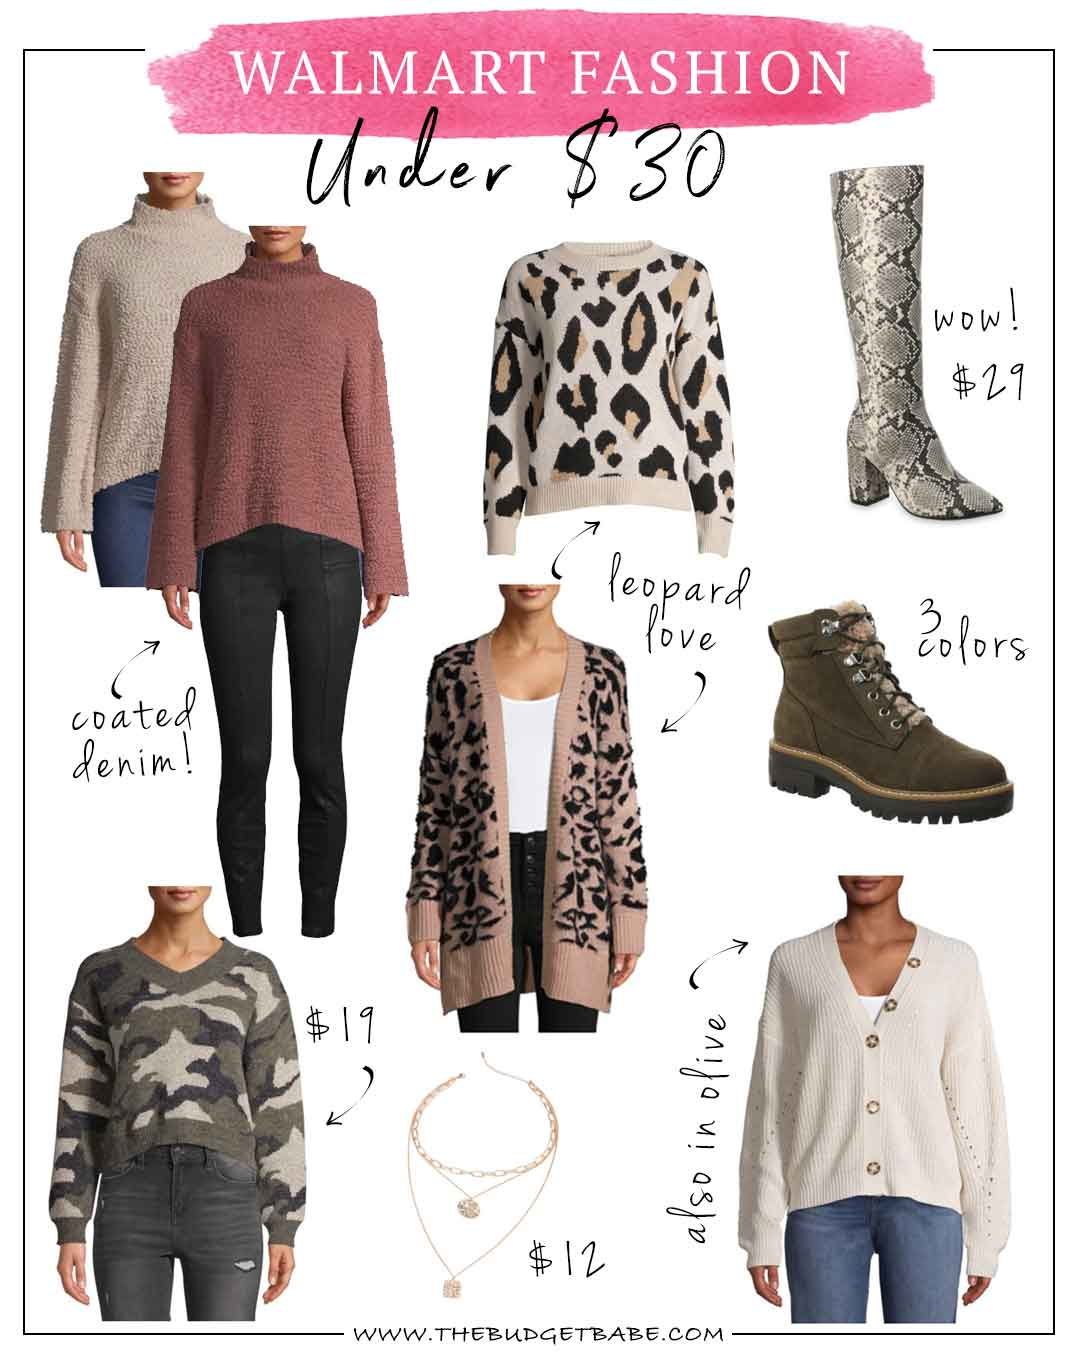 Walmart Fall Finds under $30! Gonna need that leopard cardigan